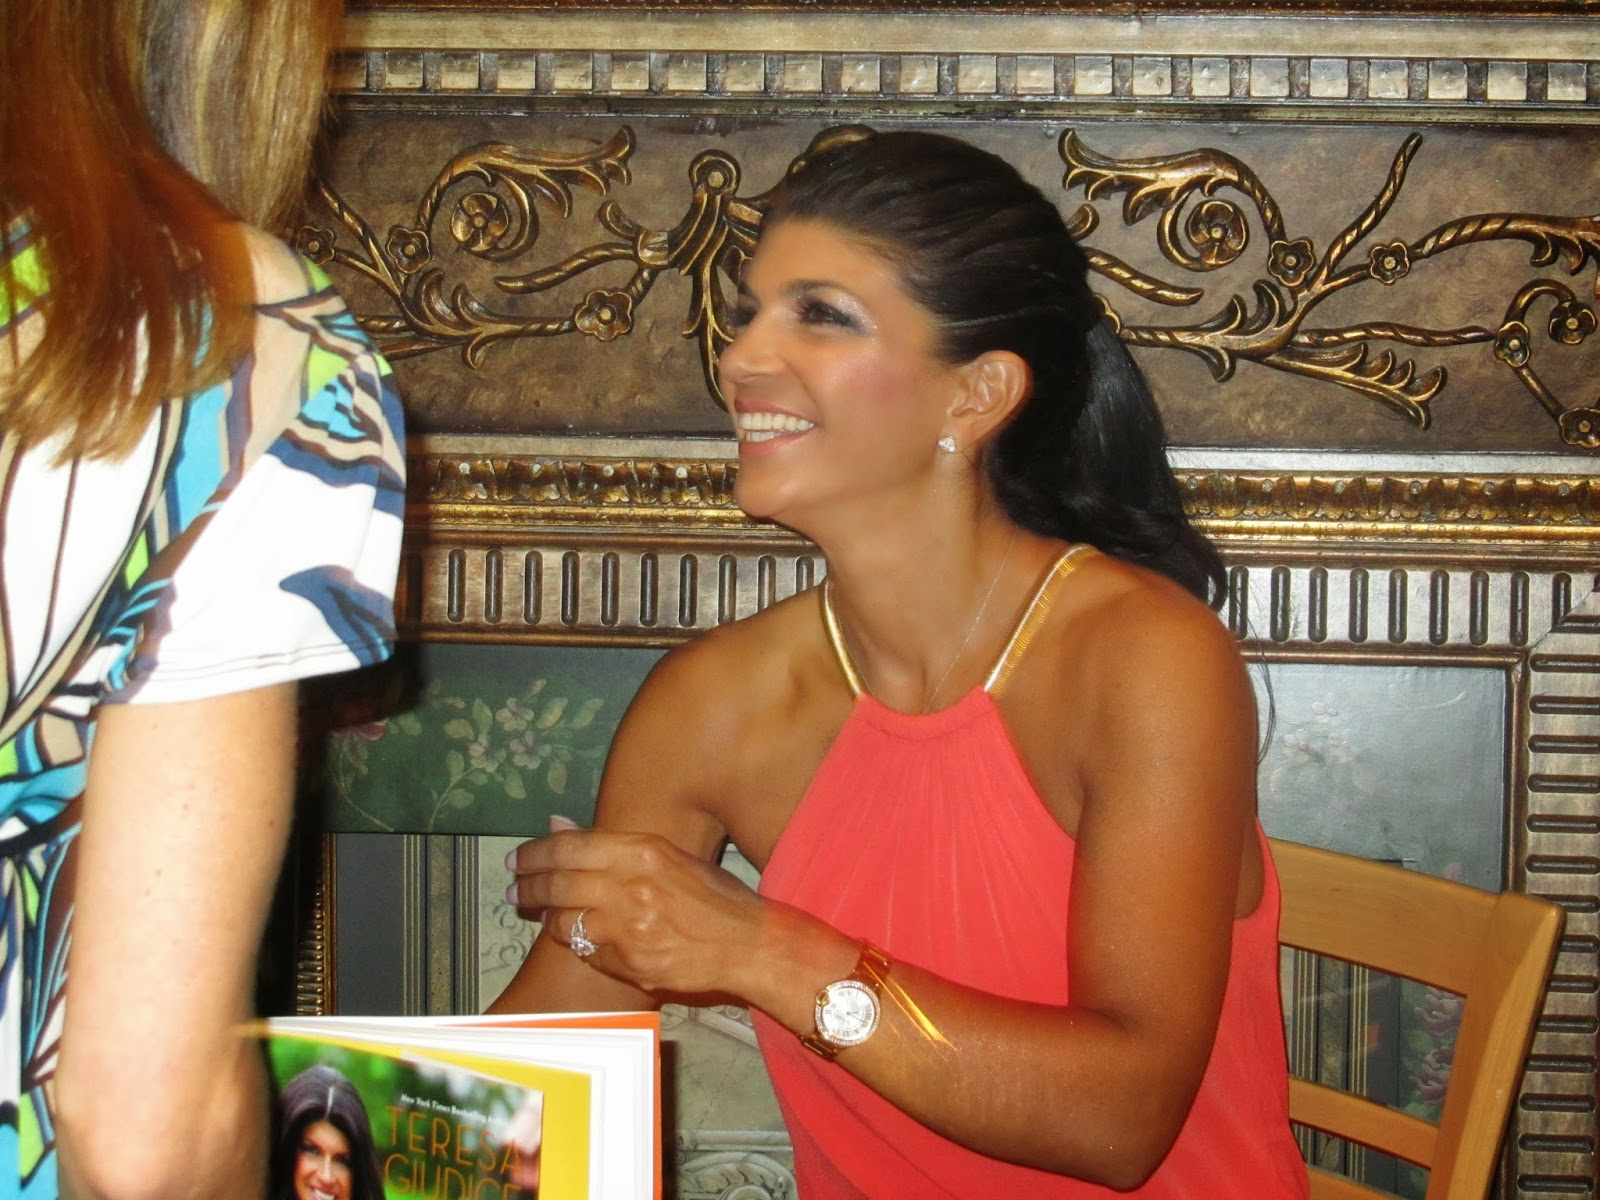 Recently I Had The Opportunity To Meet One Of Most Famous Jersey Girls Teresa Giudice Real Housewives NJ She Was Doing A Book Signing At My